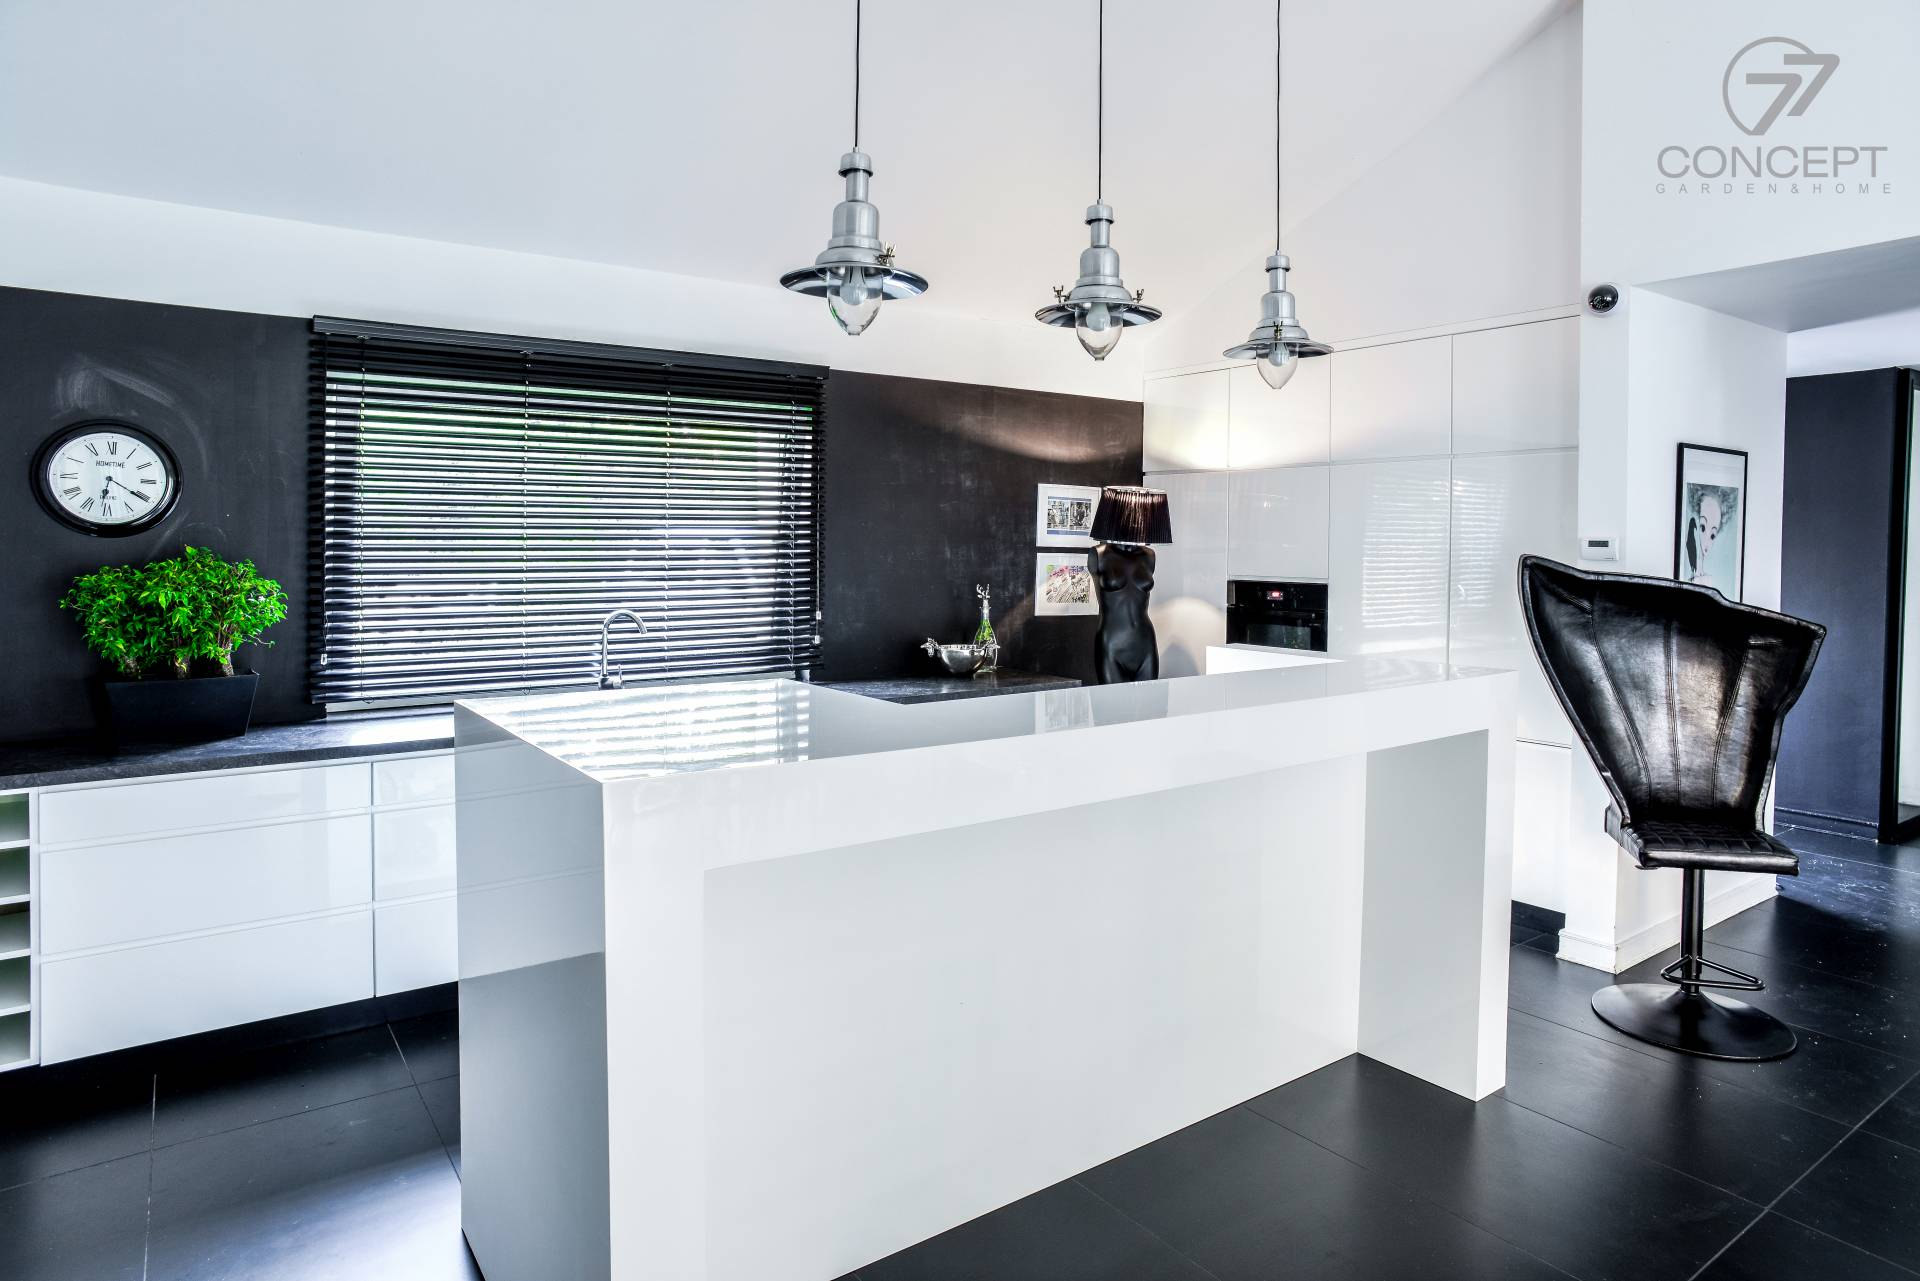 concept77 kitchen (1)